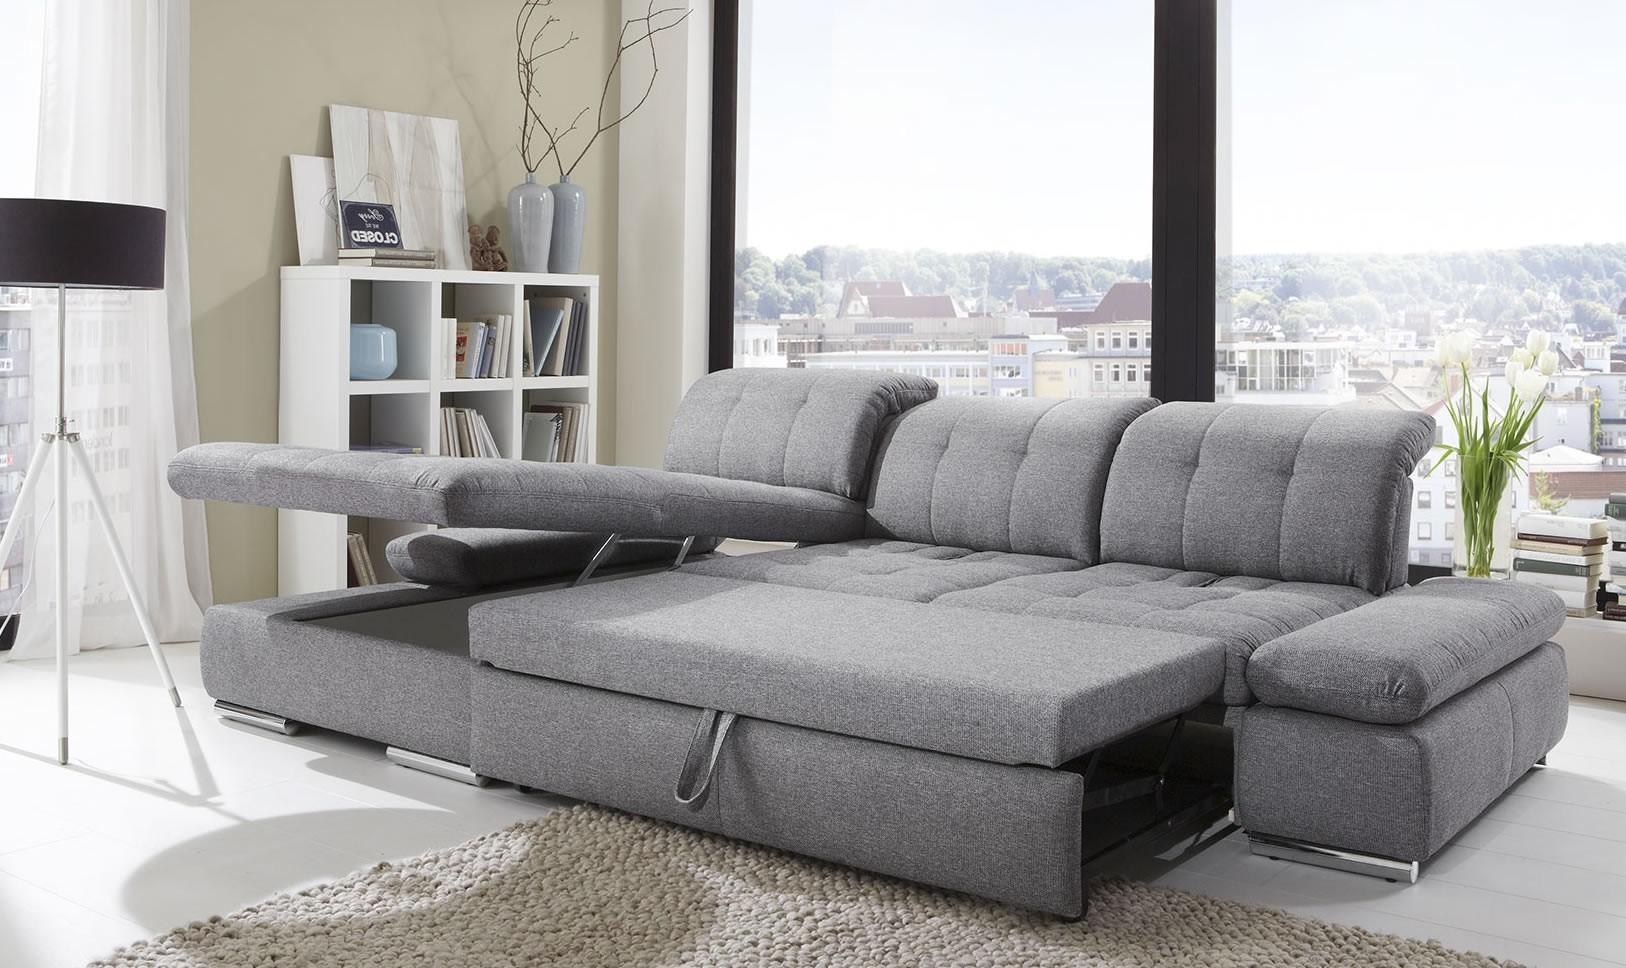 Sectional Queen Sleeper Sofa Bed | Latest Home Decor And Design Intended For Sleeper Sofas San Diego (View 17 of 20)